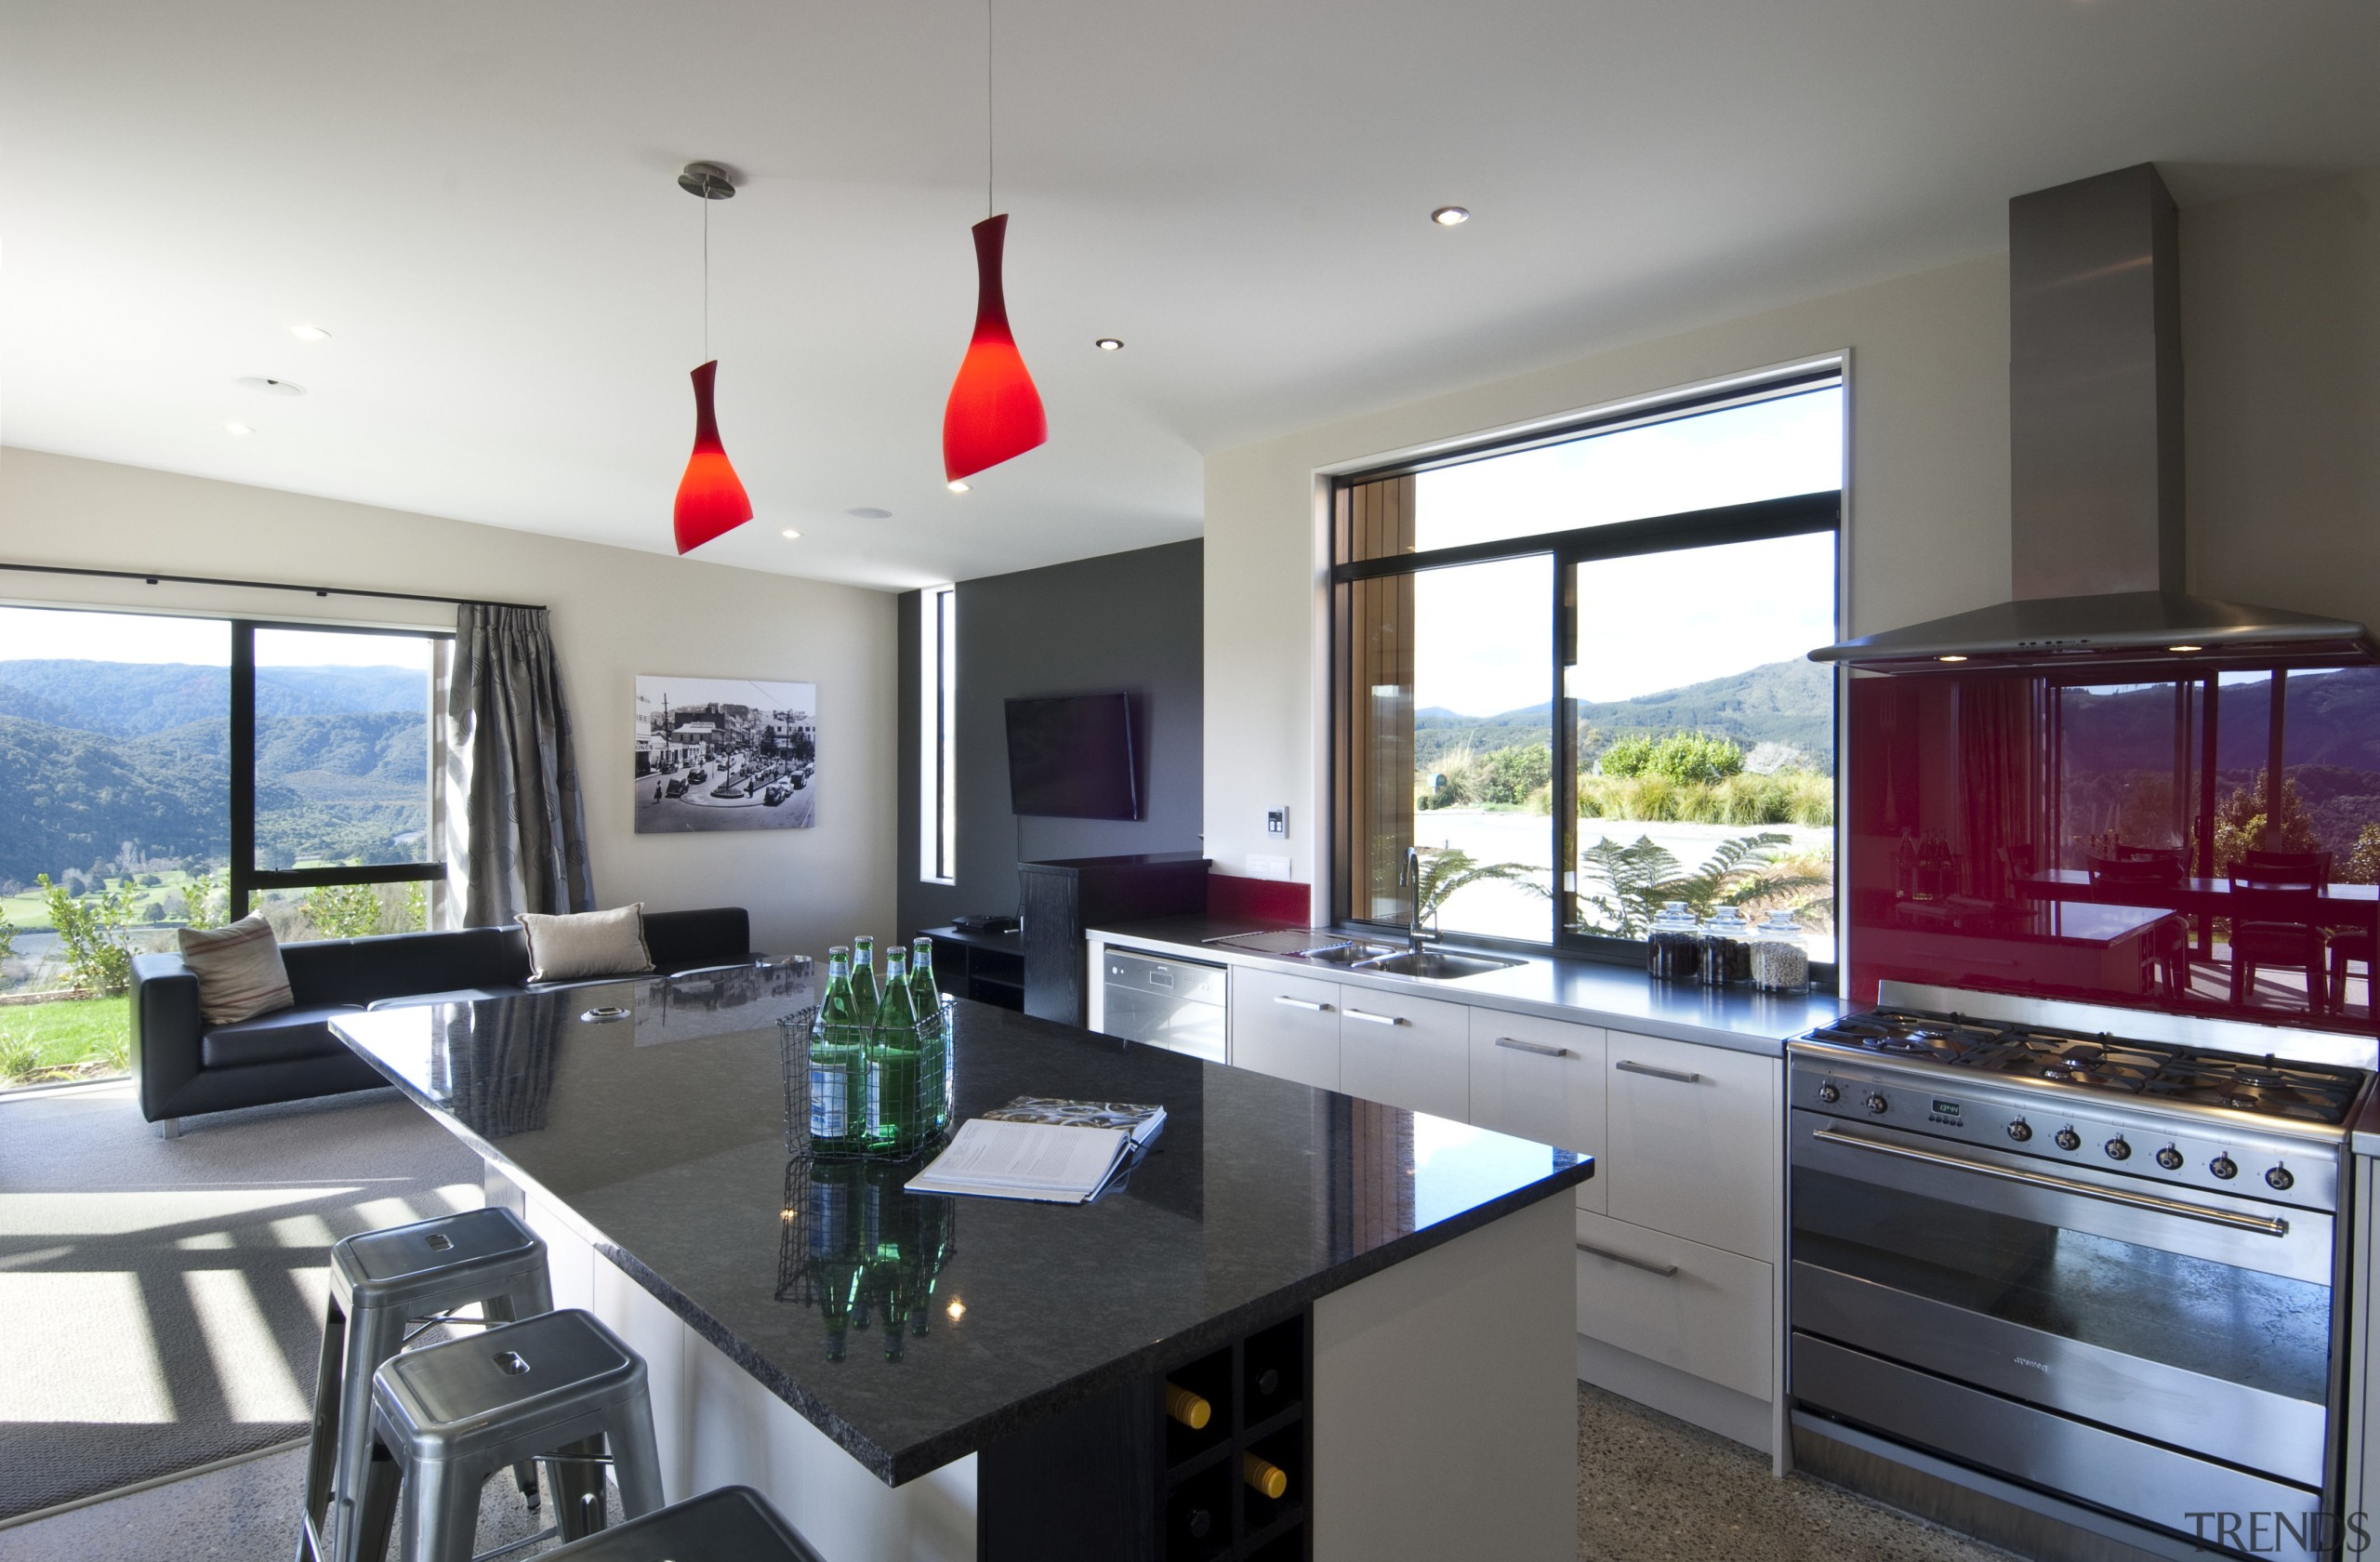 In this house, designed by David Reid Homes, countertop, interior design, kitchen, property, real estate, gray, white